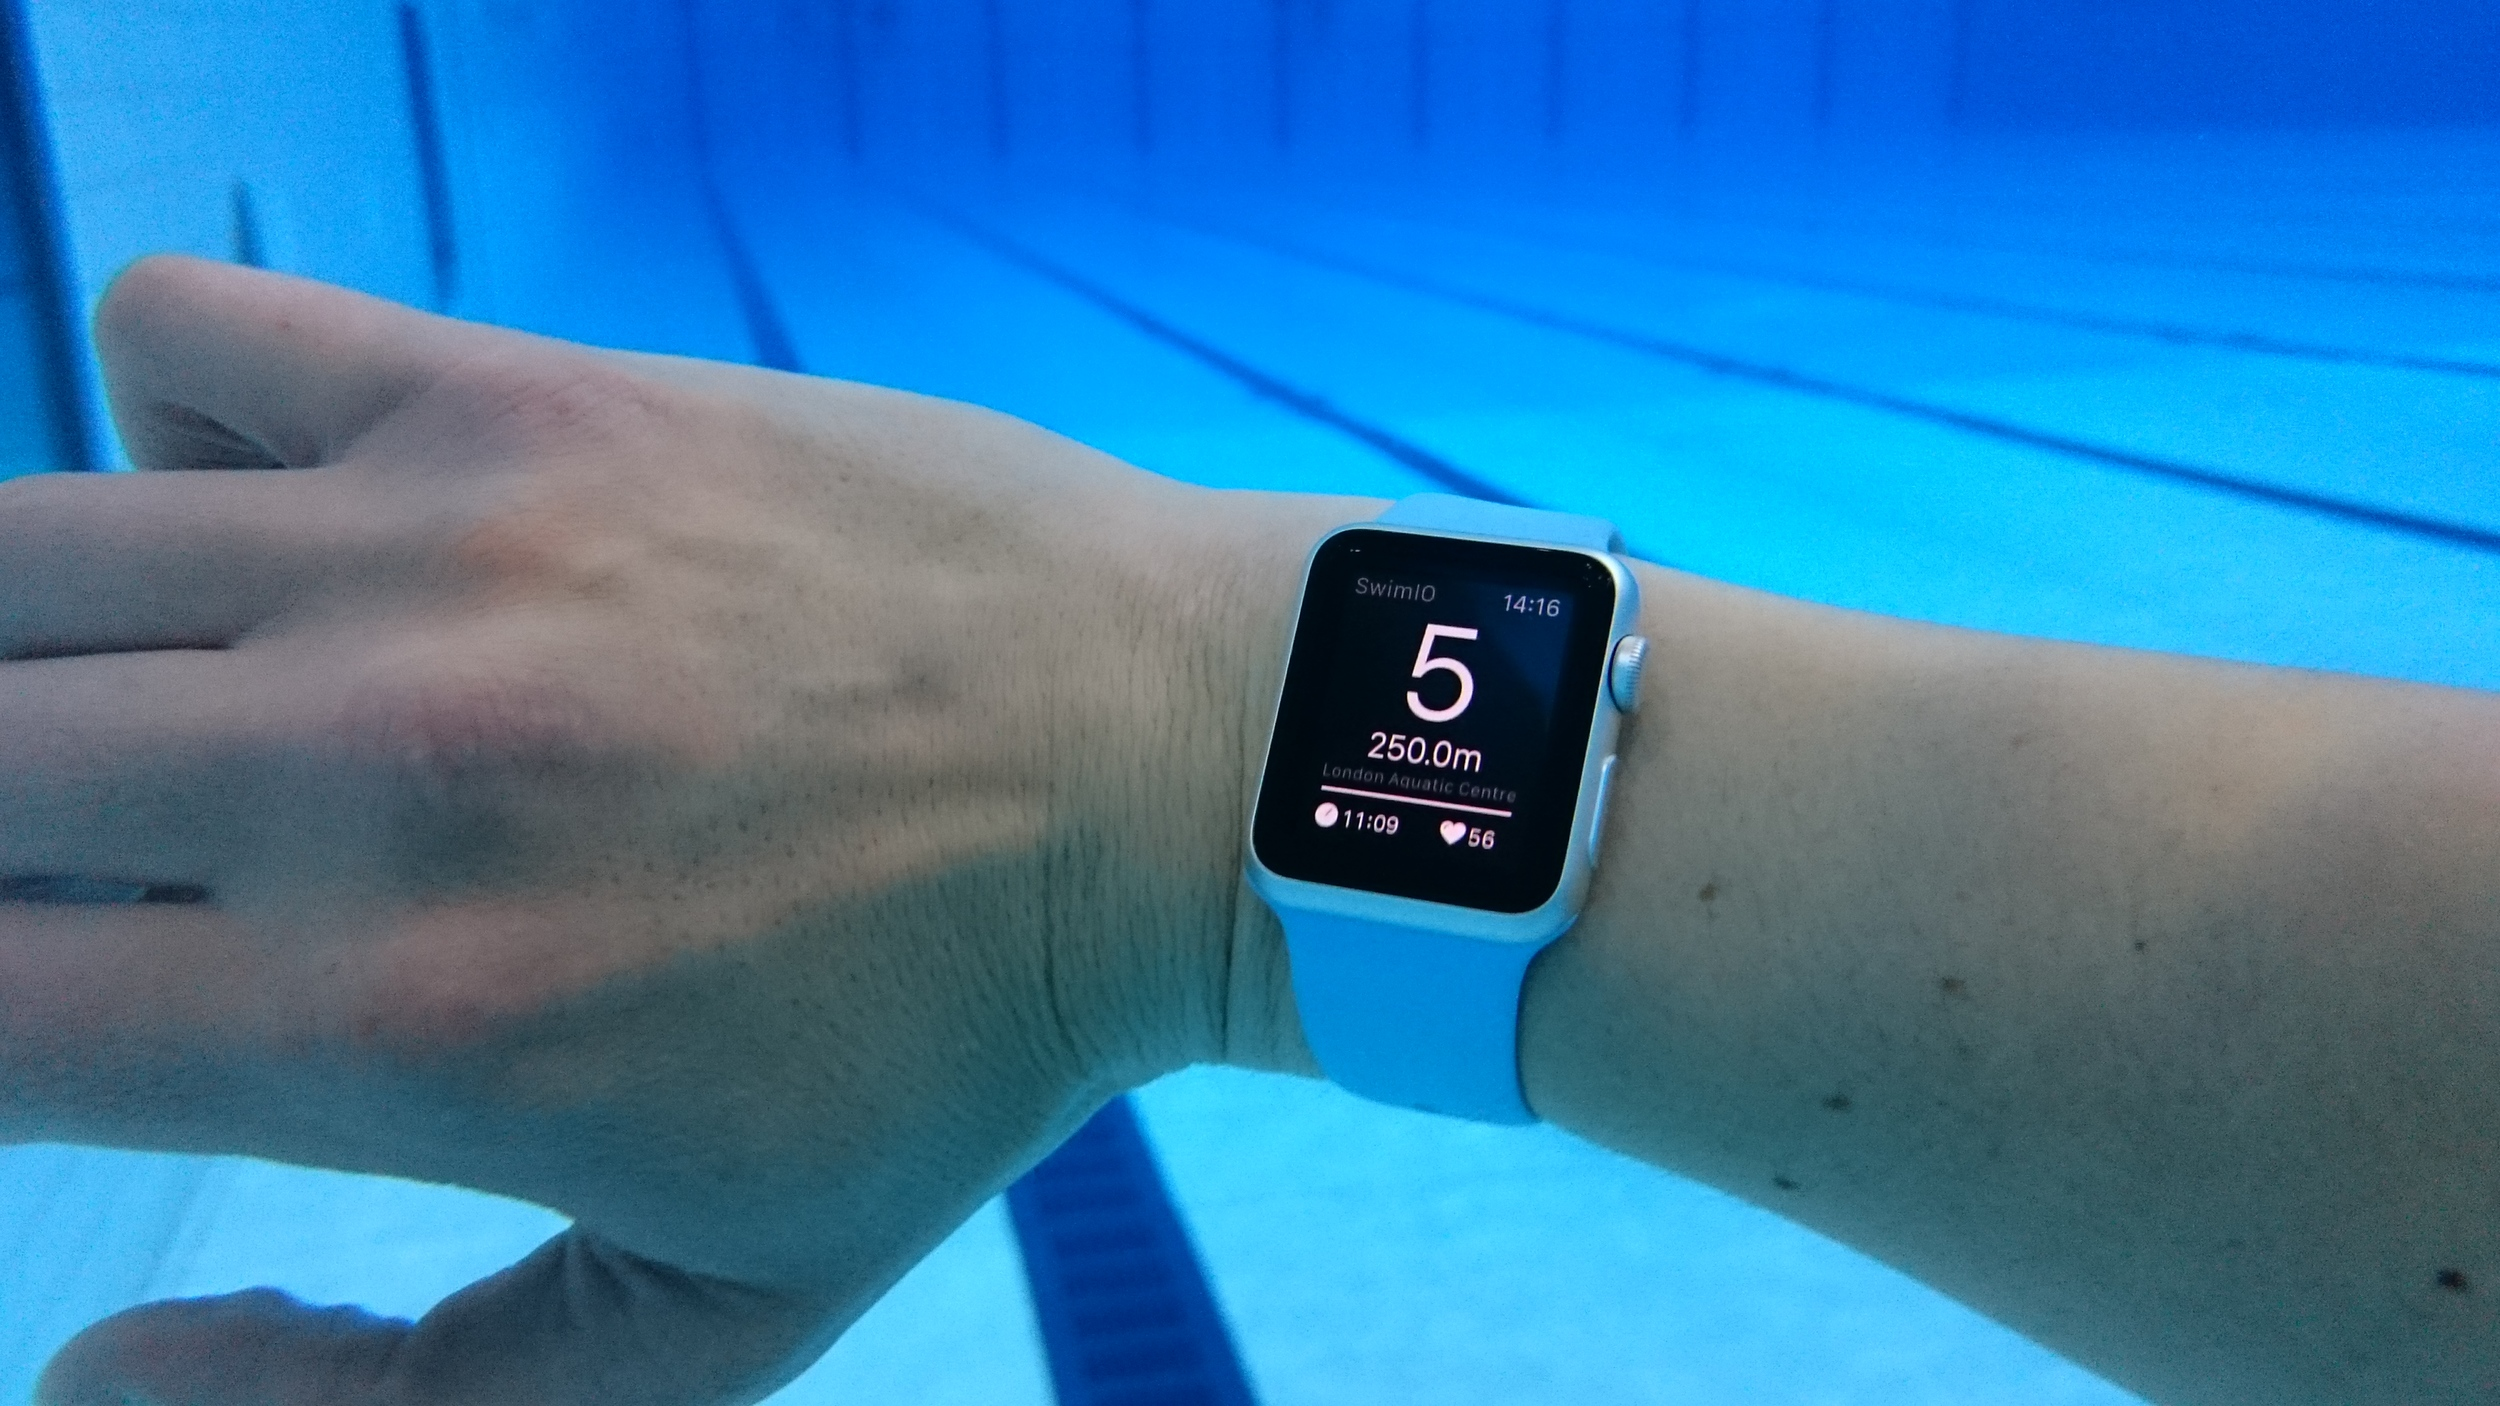 The Apple Watch screen is fantastically visible underwater.... even with fogged up goggles.